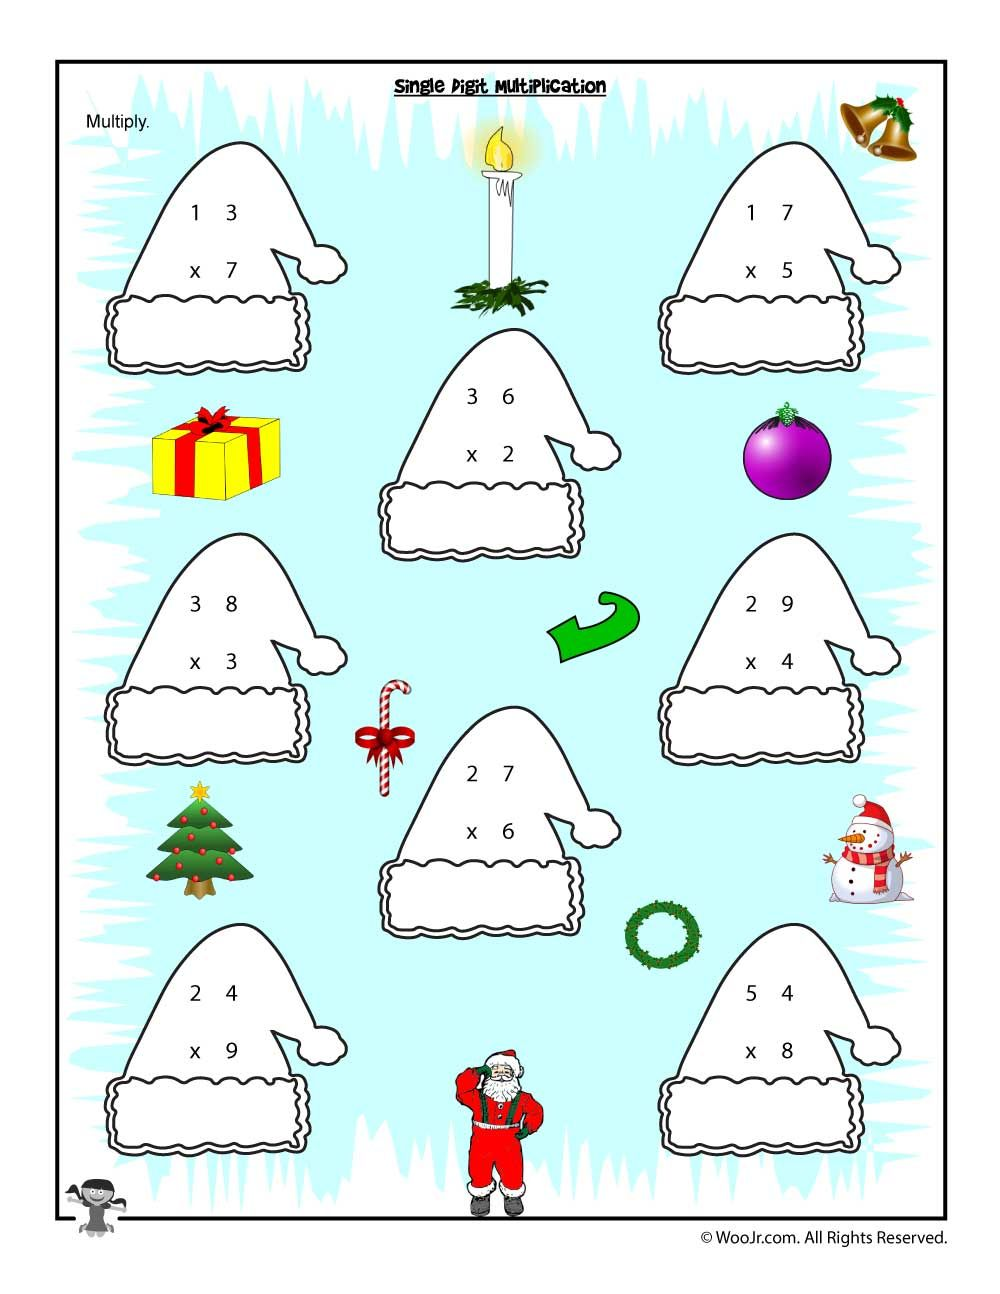 Single Digit Multiplication Christmas Worksheet | Math | Pinterest ...